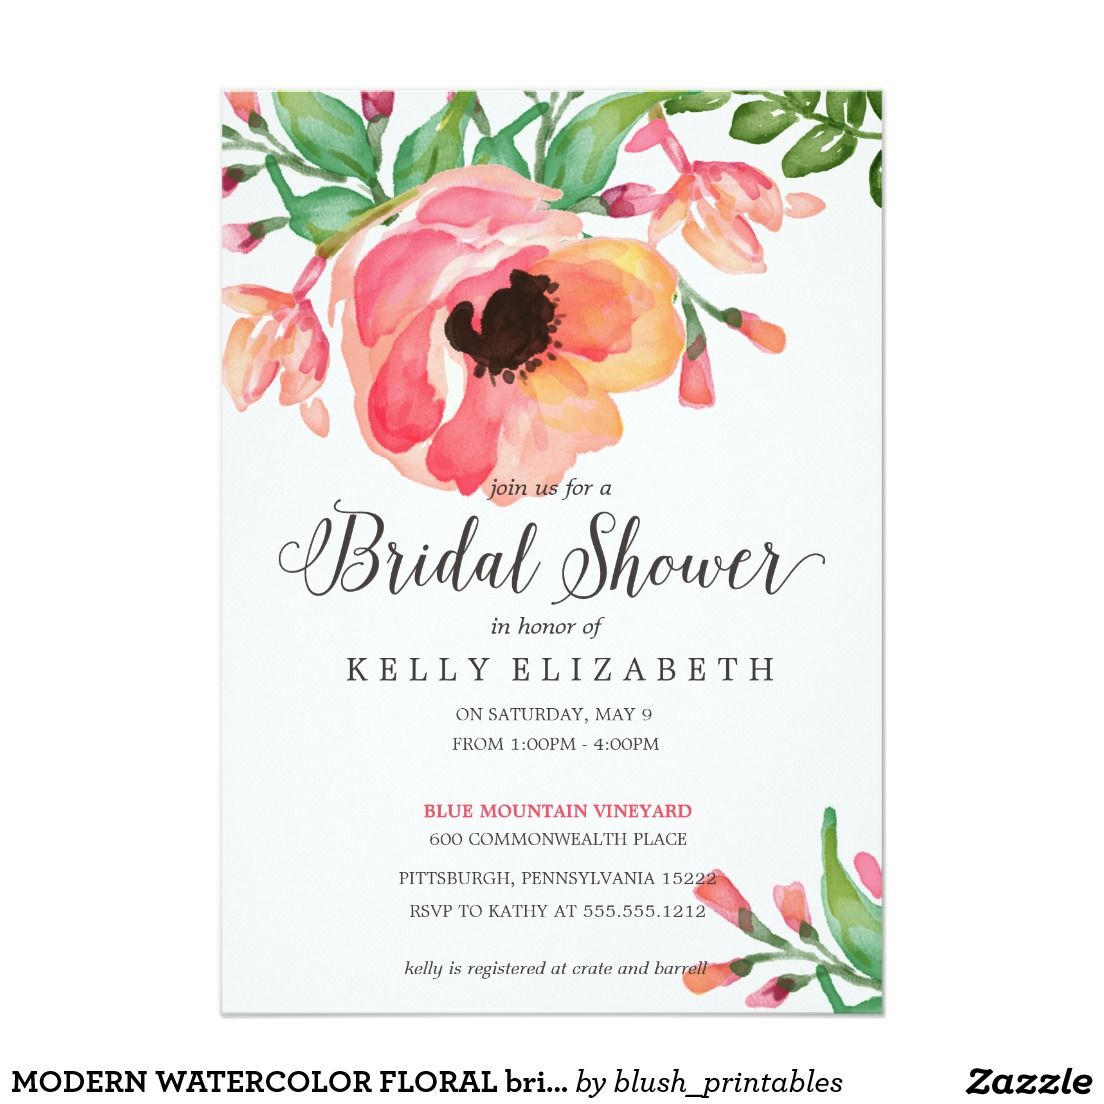 MODERN WATERCOLOR FLORAL bridal shower invitation done in beautiful ...